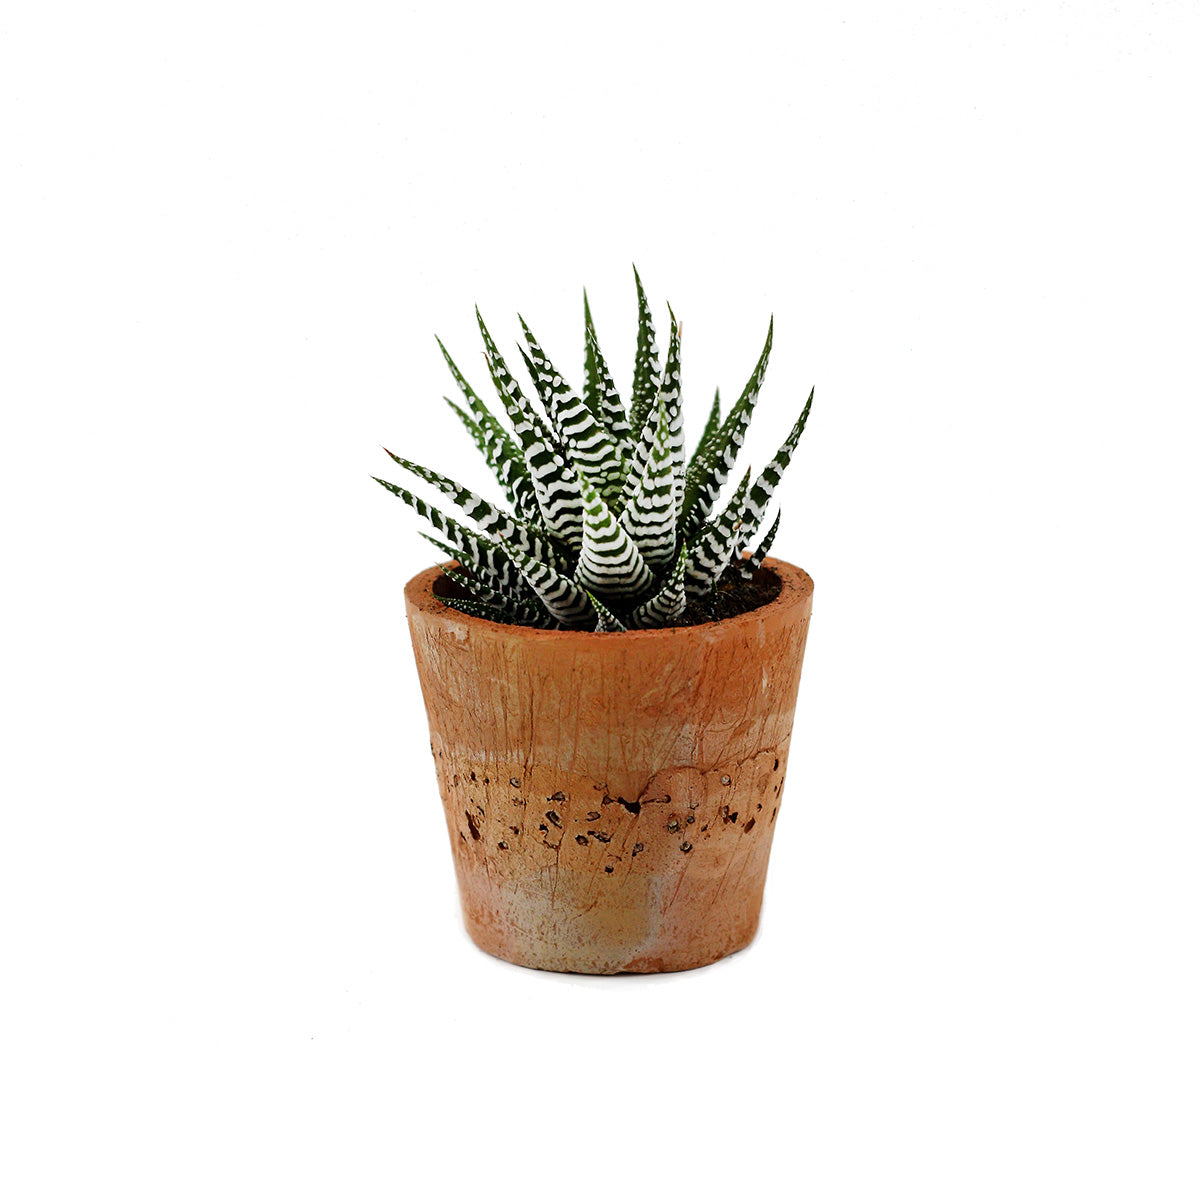 Zebra Plant (Haworthia) House Plant in Terracotta Pot